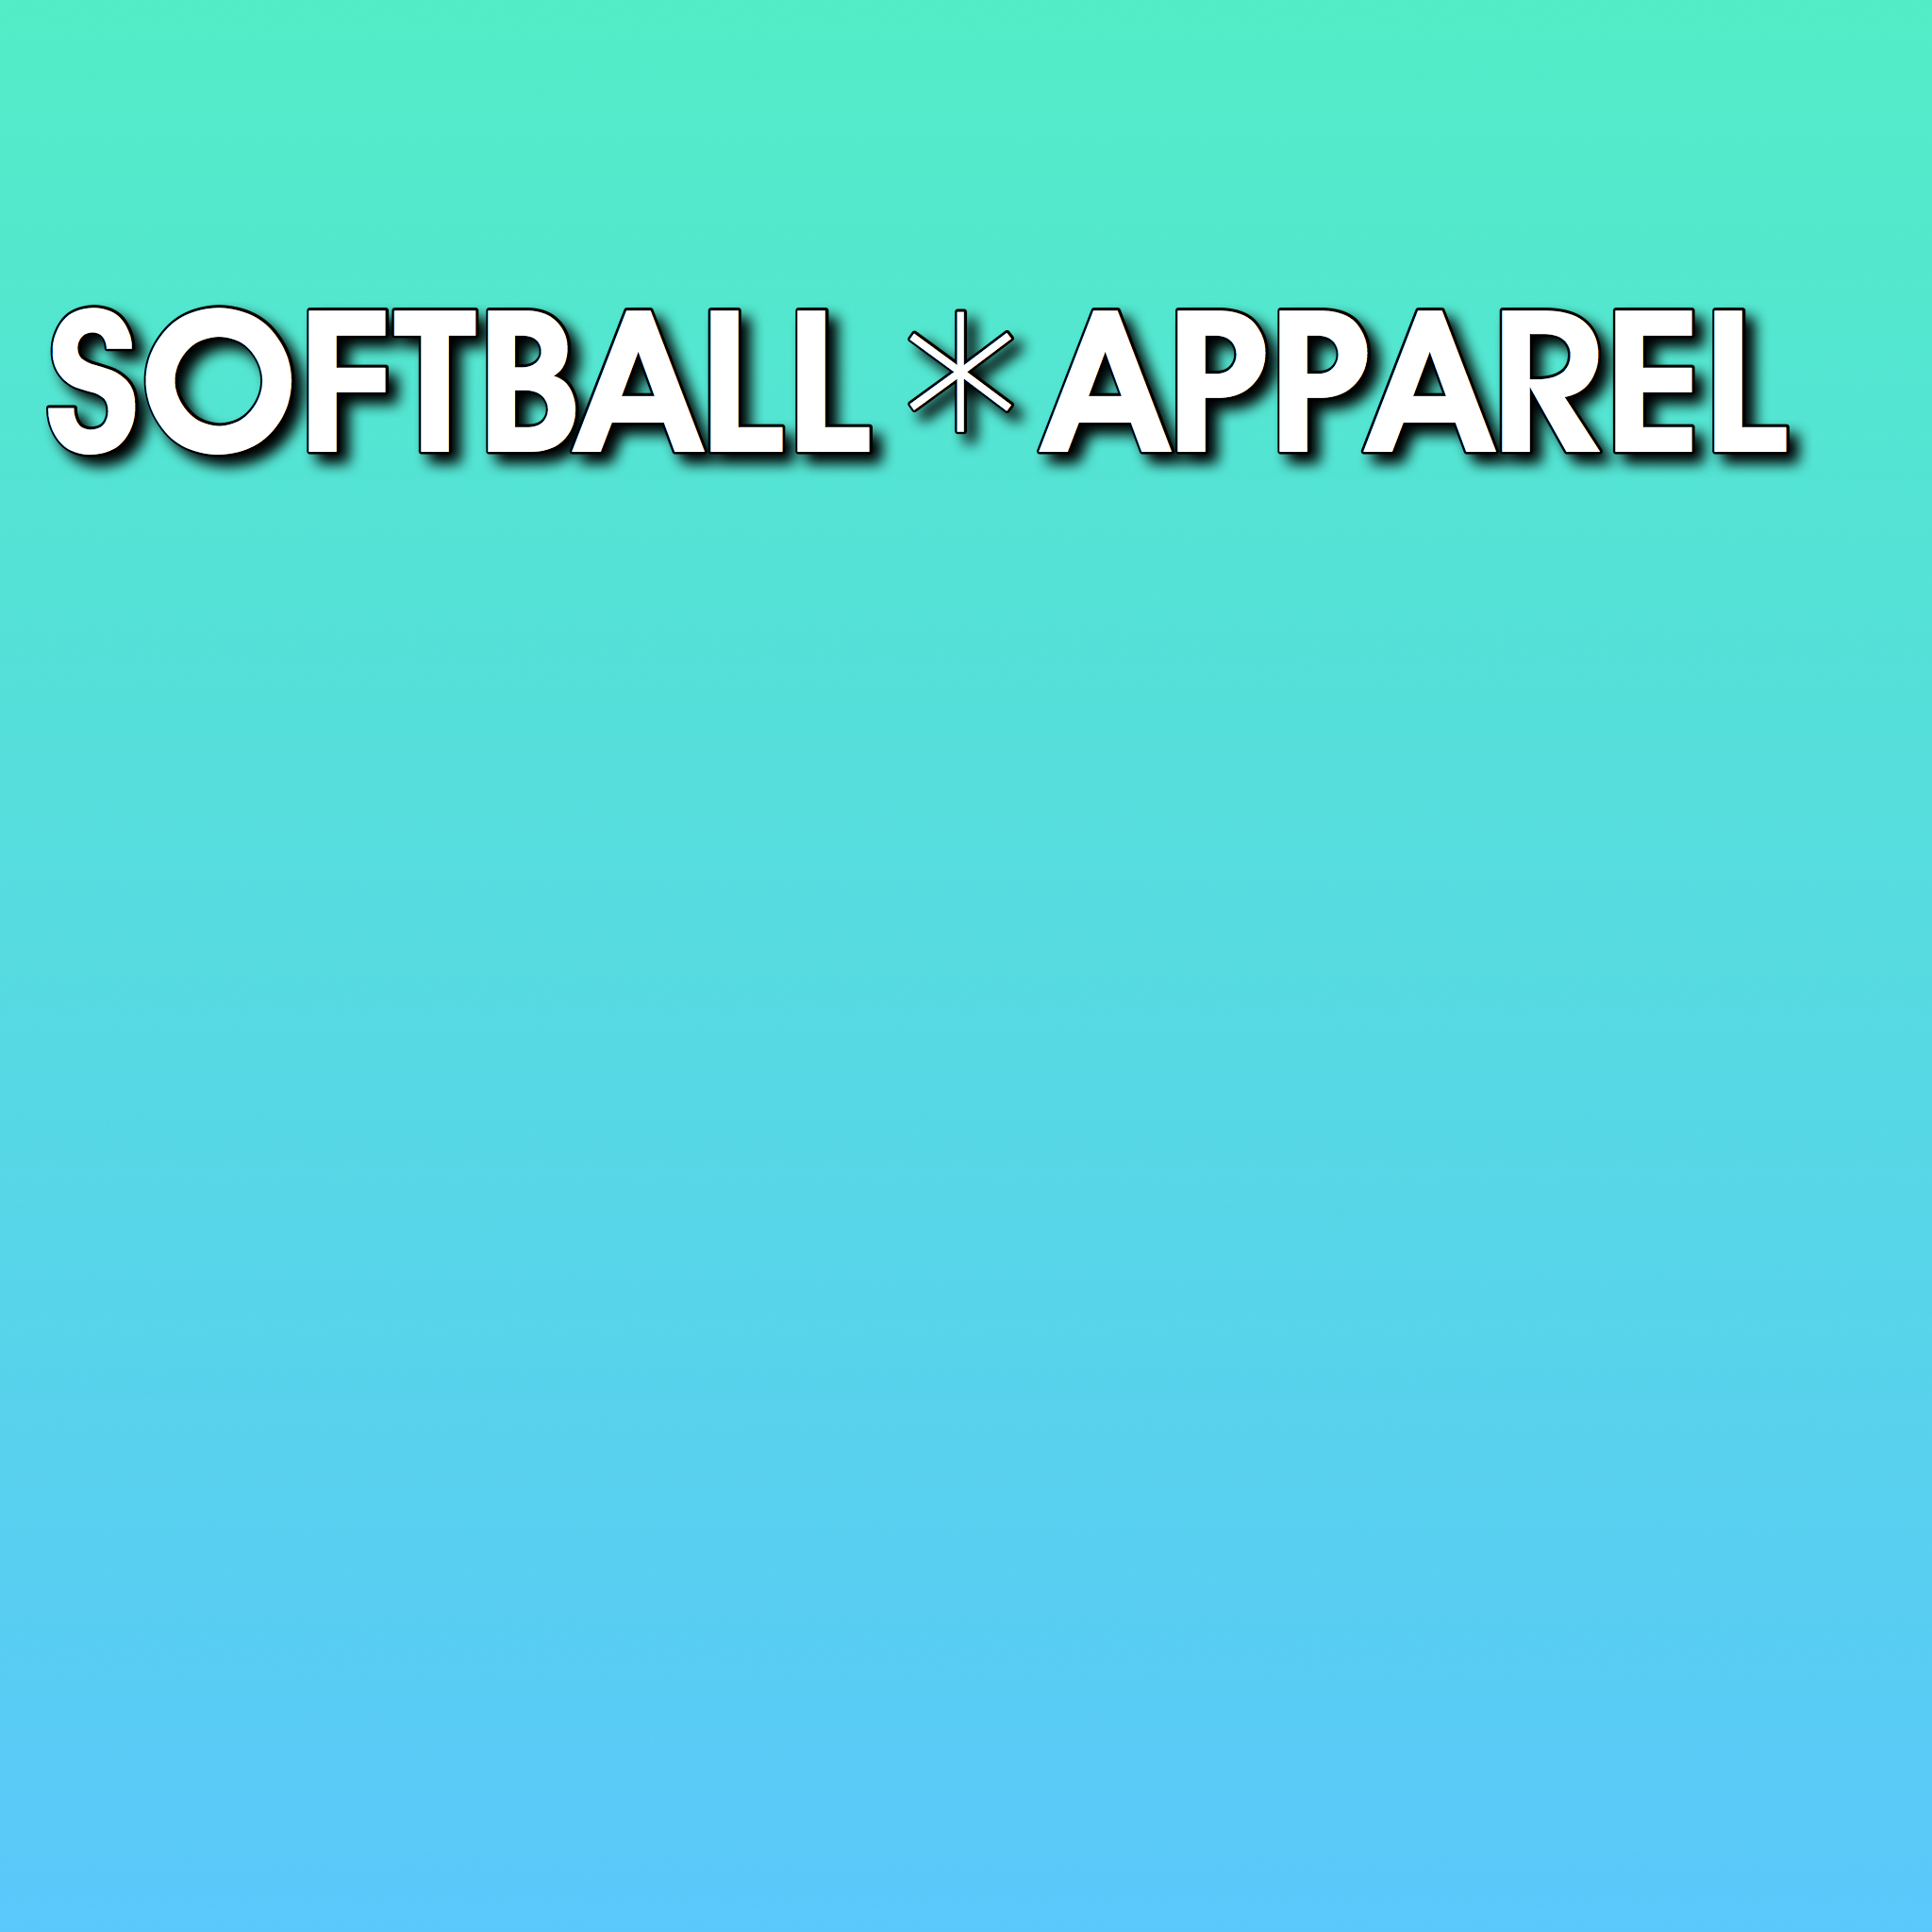 softball apparel | Teespring